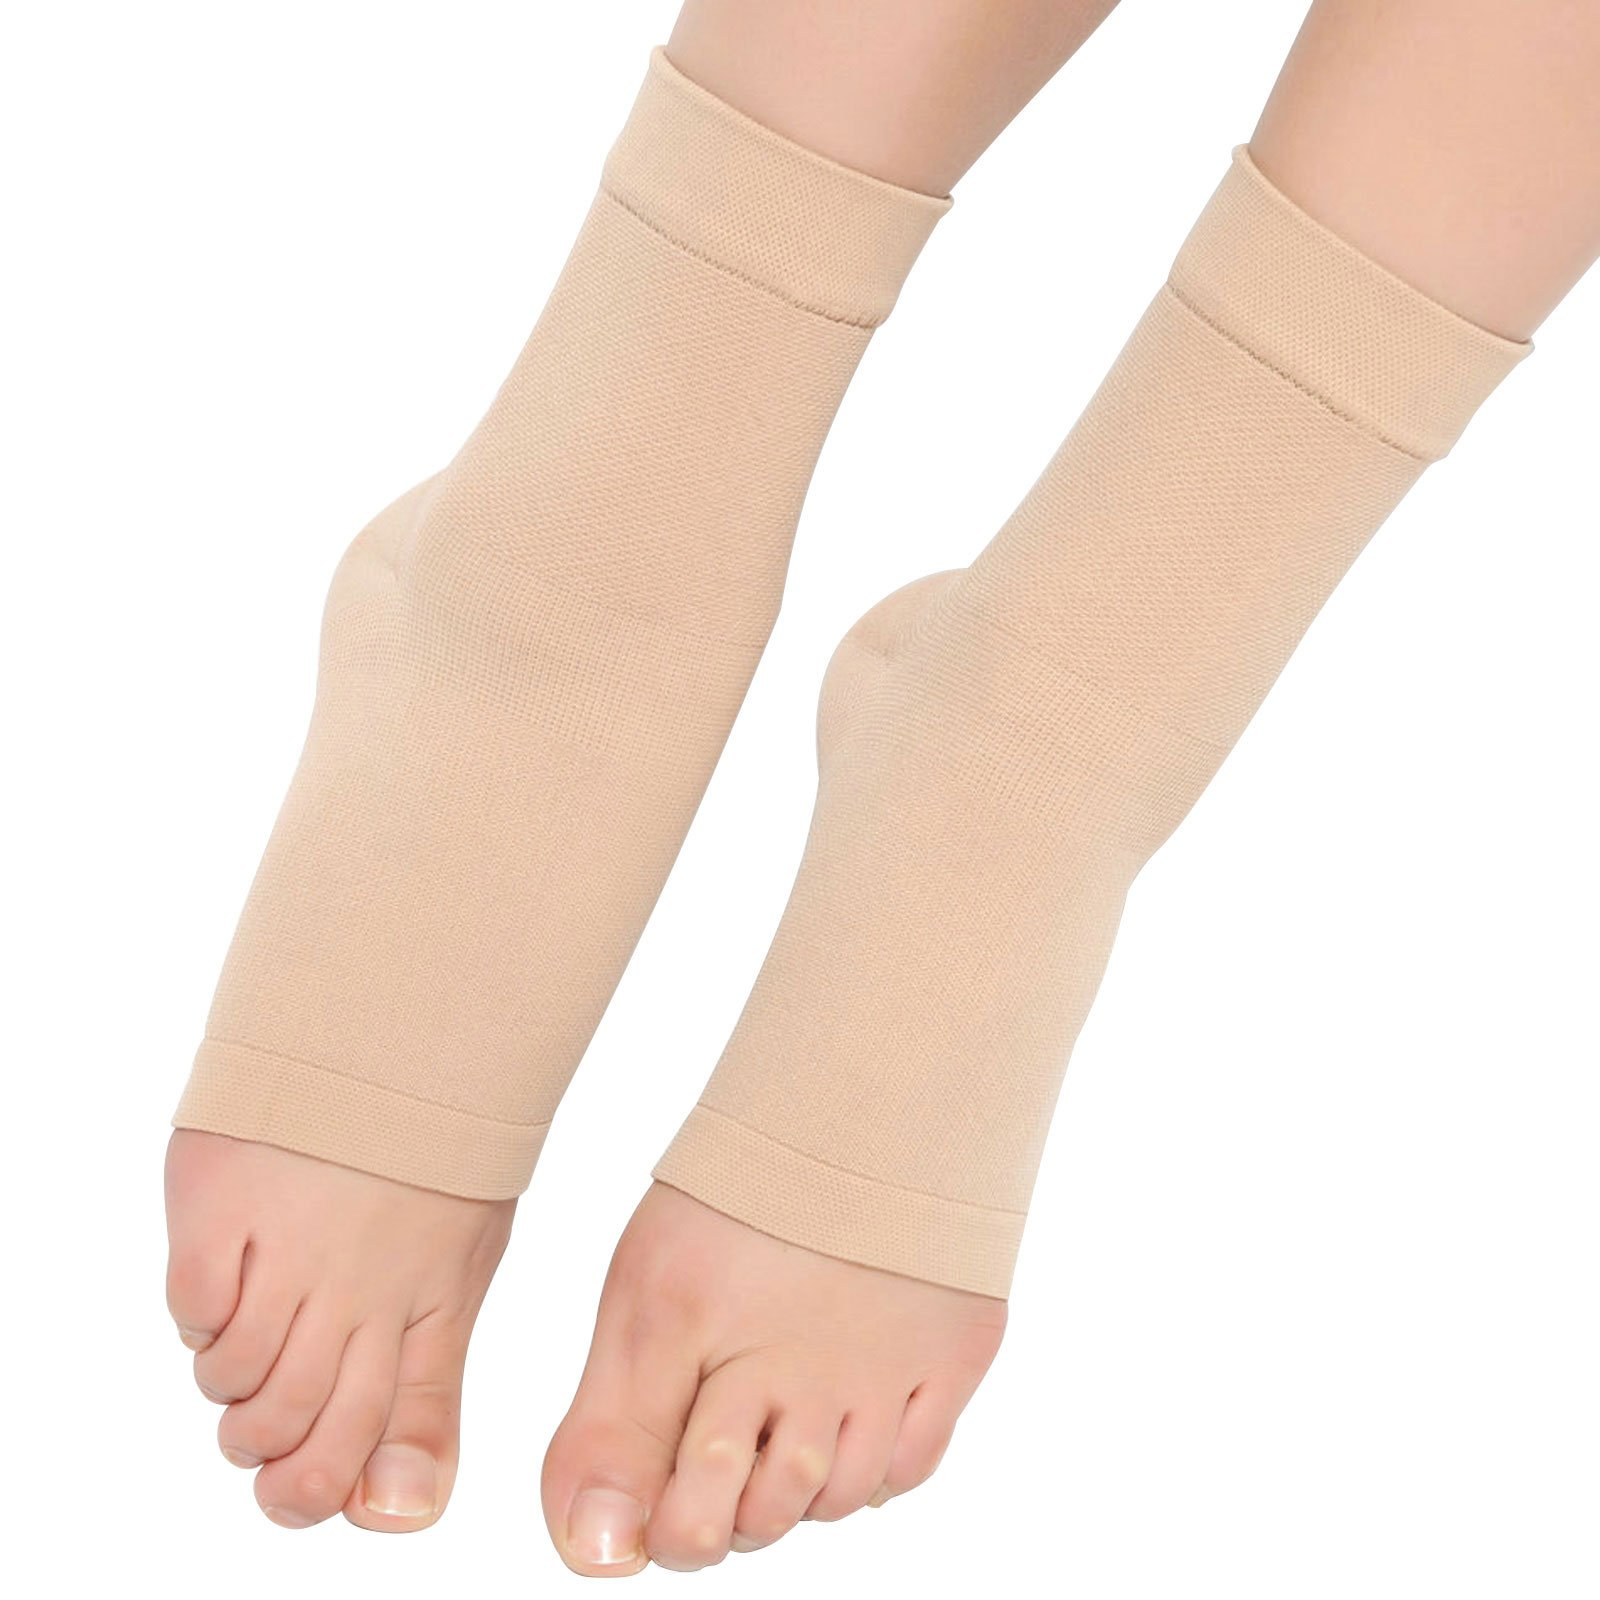 Spotbrace Medical Compression Breathable Ankle Brace, Elastic Thin Ankle Support, Pain Relief Ankle Sleeve For Unisex Ankle Swelling, Achilles Tendonitis, Plantar Fasciitis and Sprained - Nude, 1 Pair by Spotbrace (Image #2)